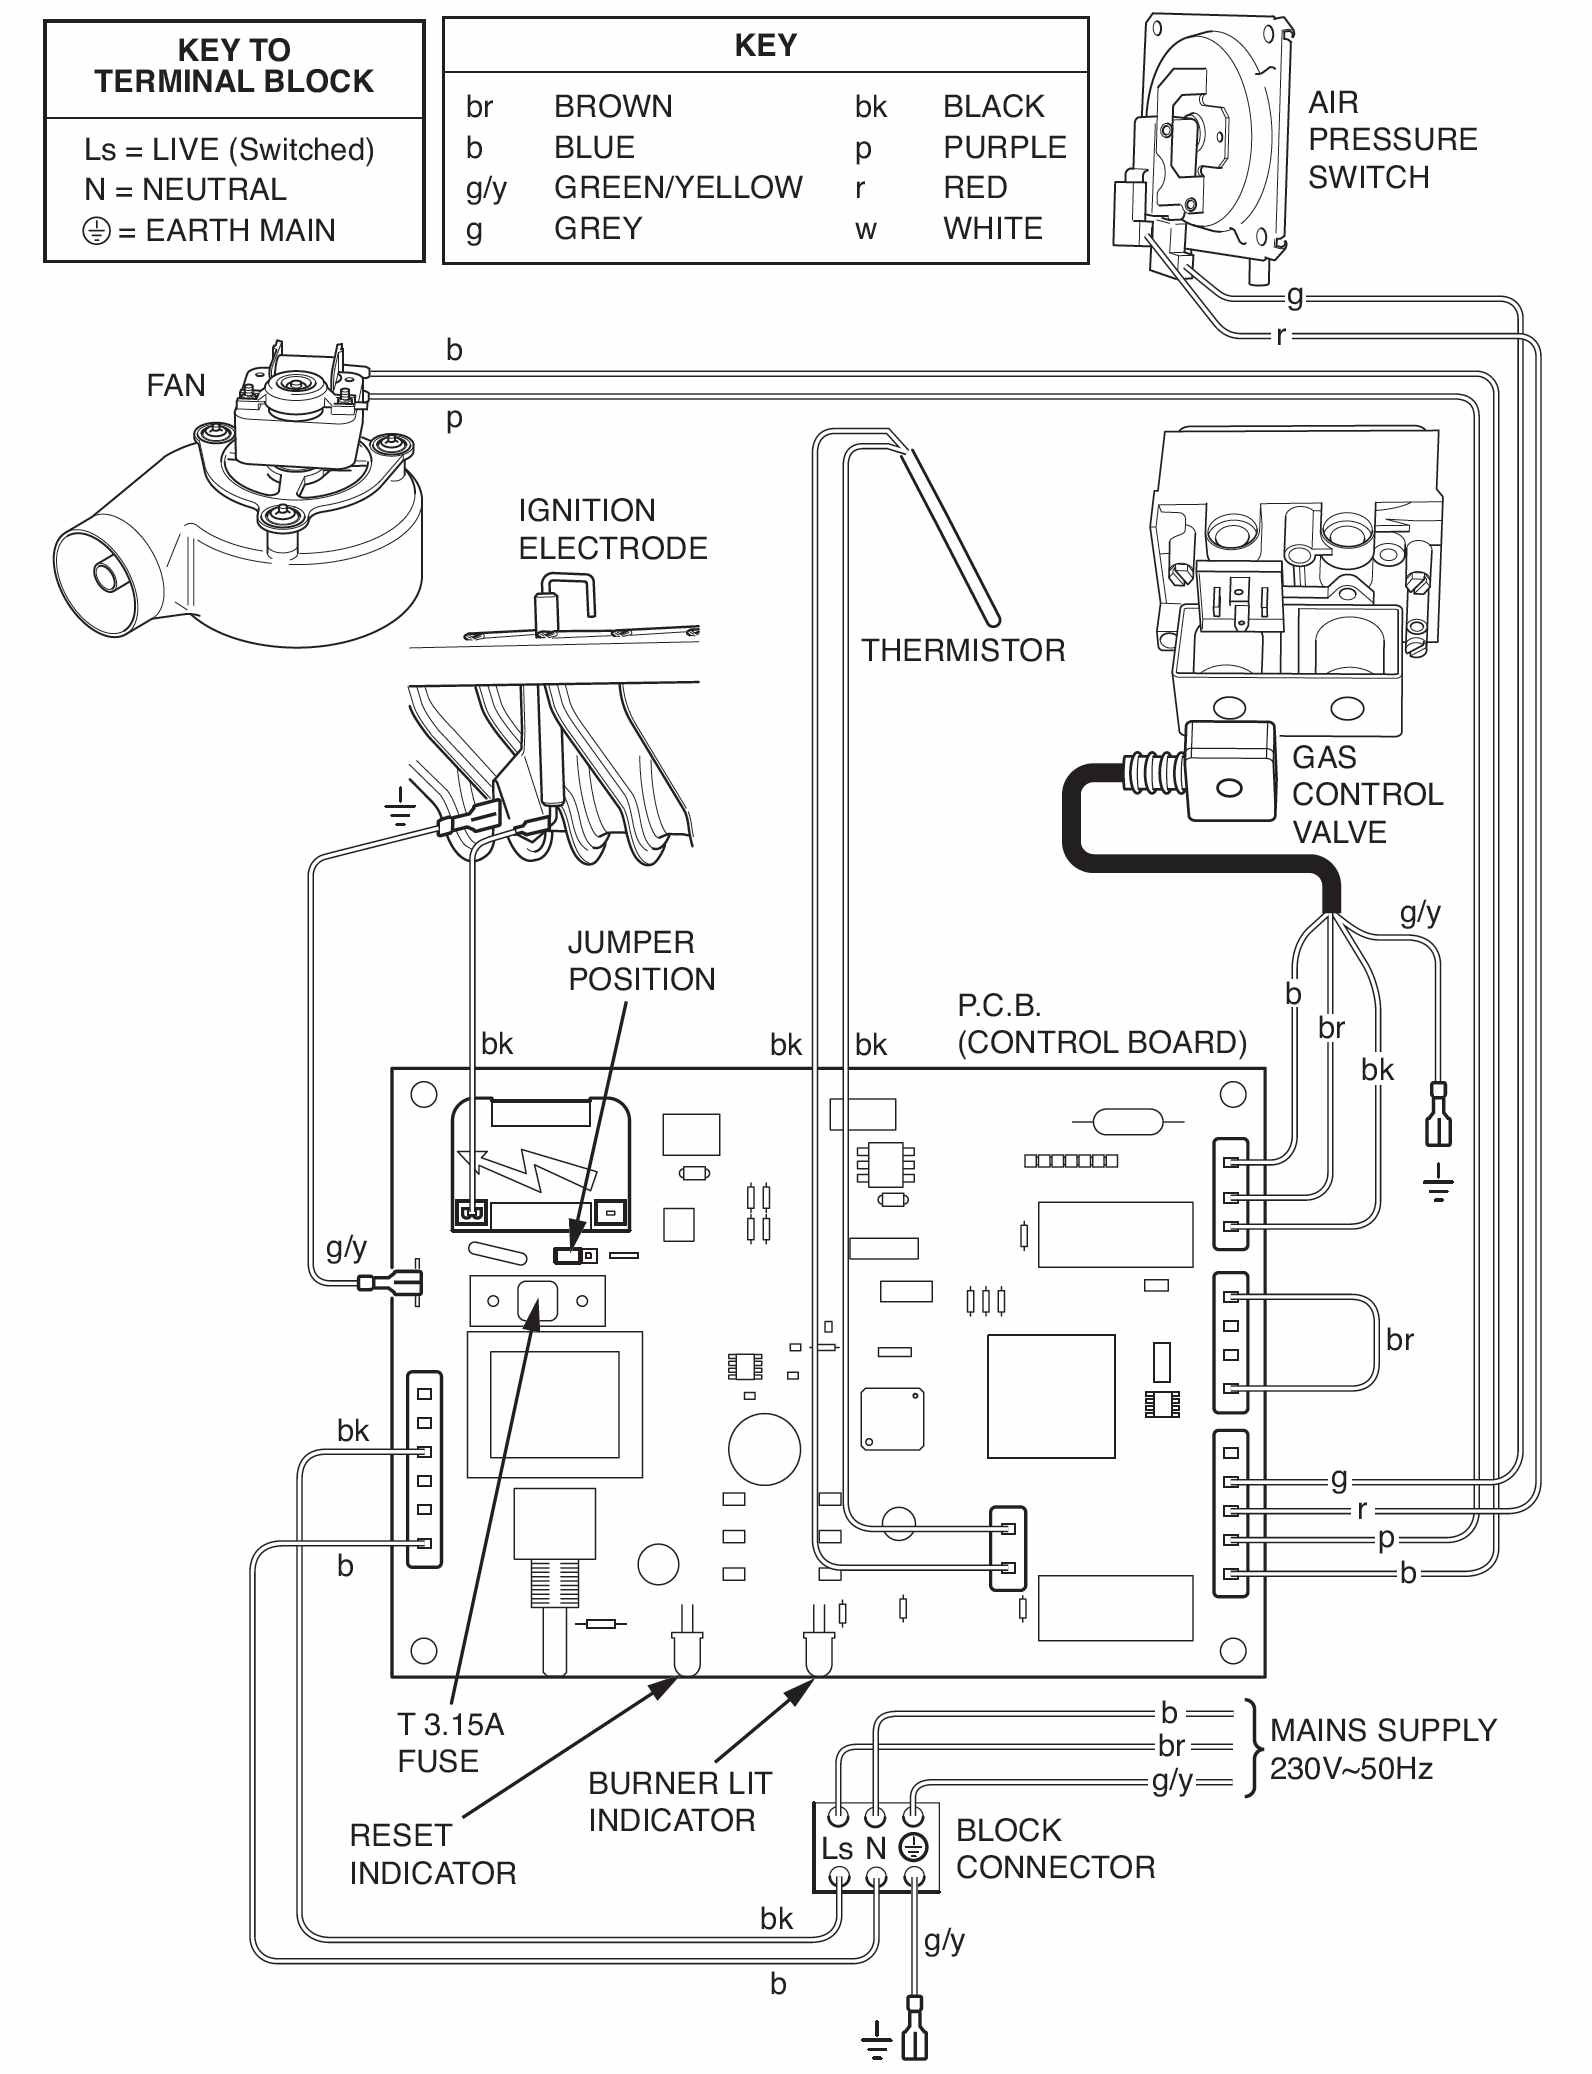 Ask Vaillant Domestic Boilers Air Pressor Wiring Diagram Hideaway 40bff 60bff 80bff Schematic Pijnenburg Ritter Pcb Versions